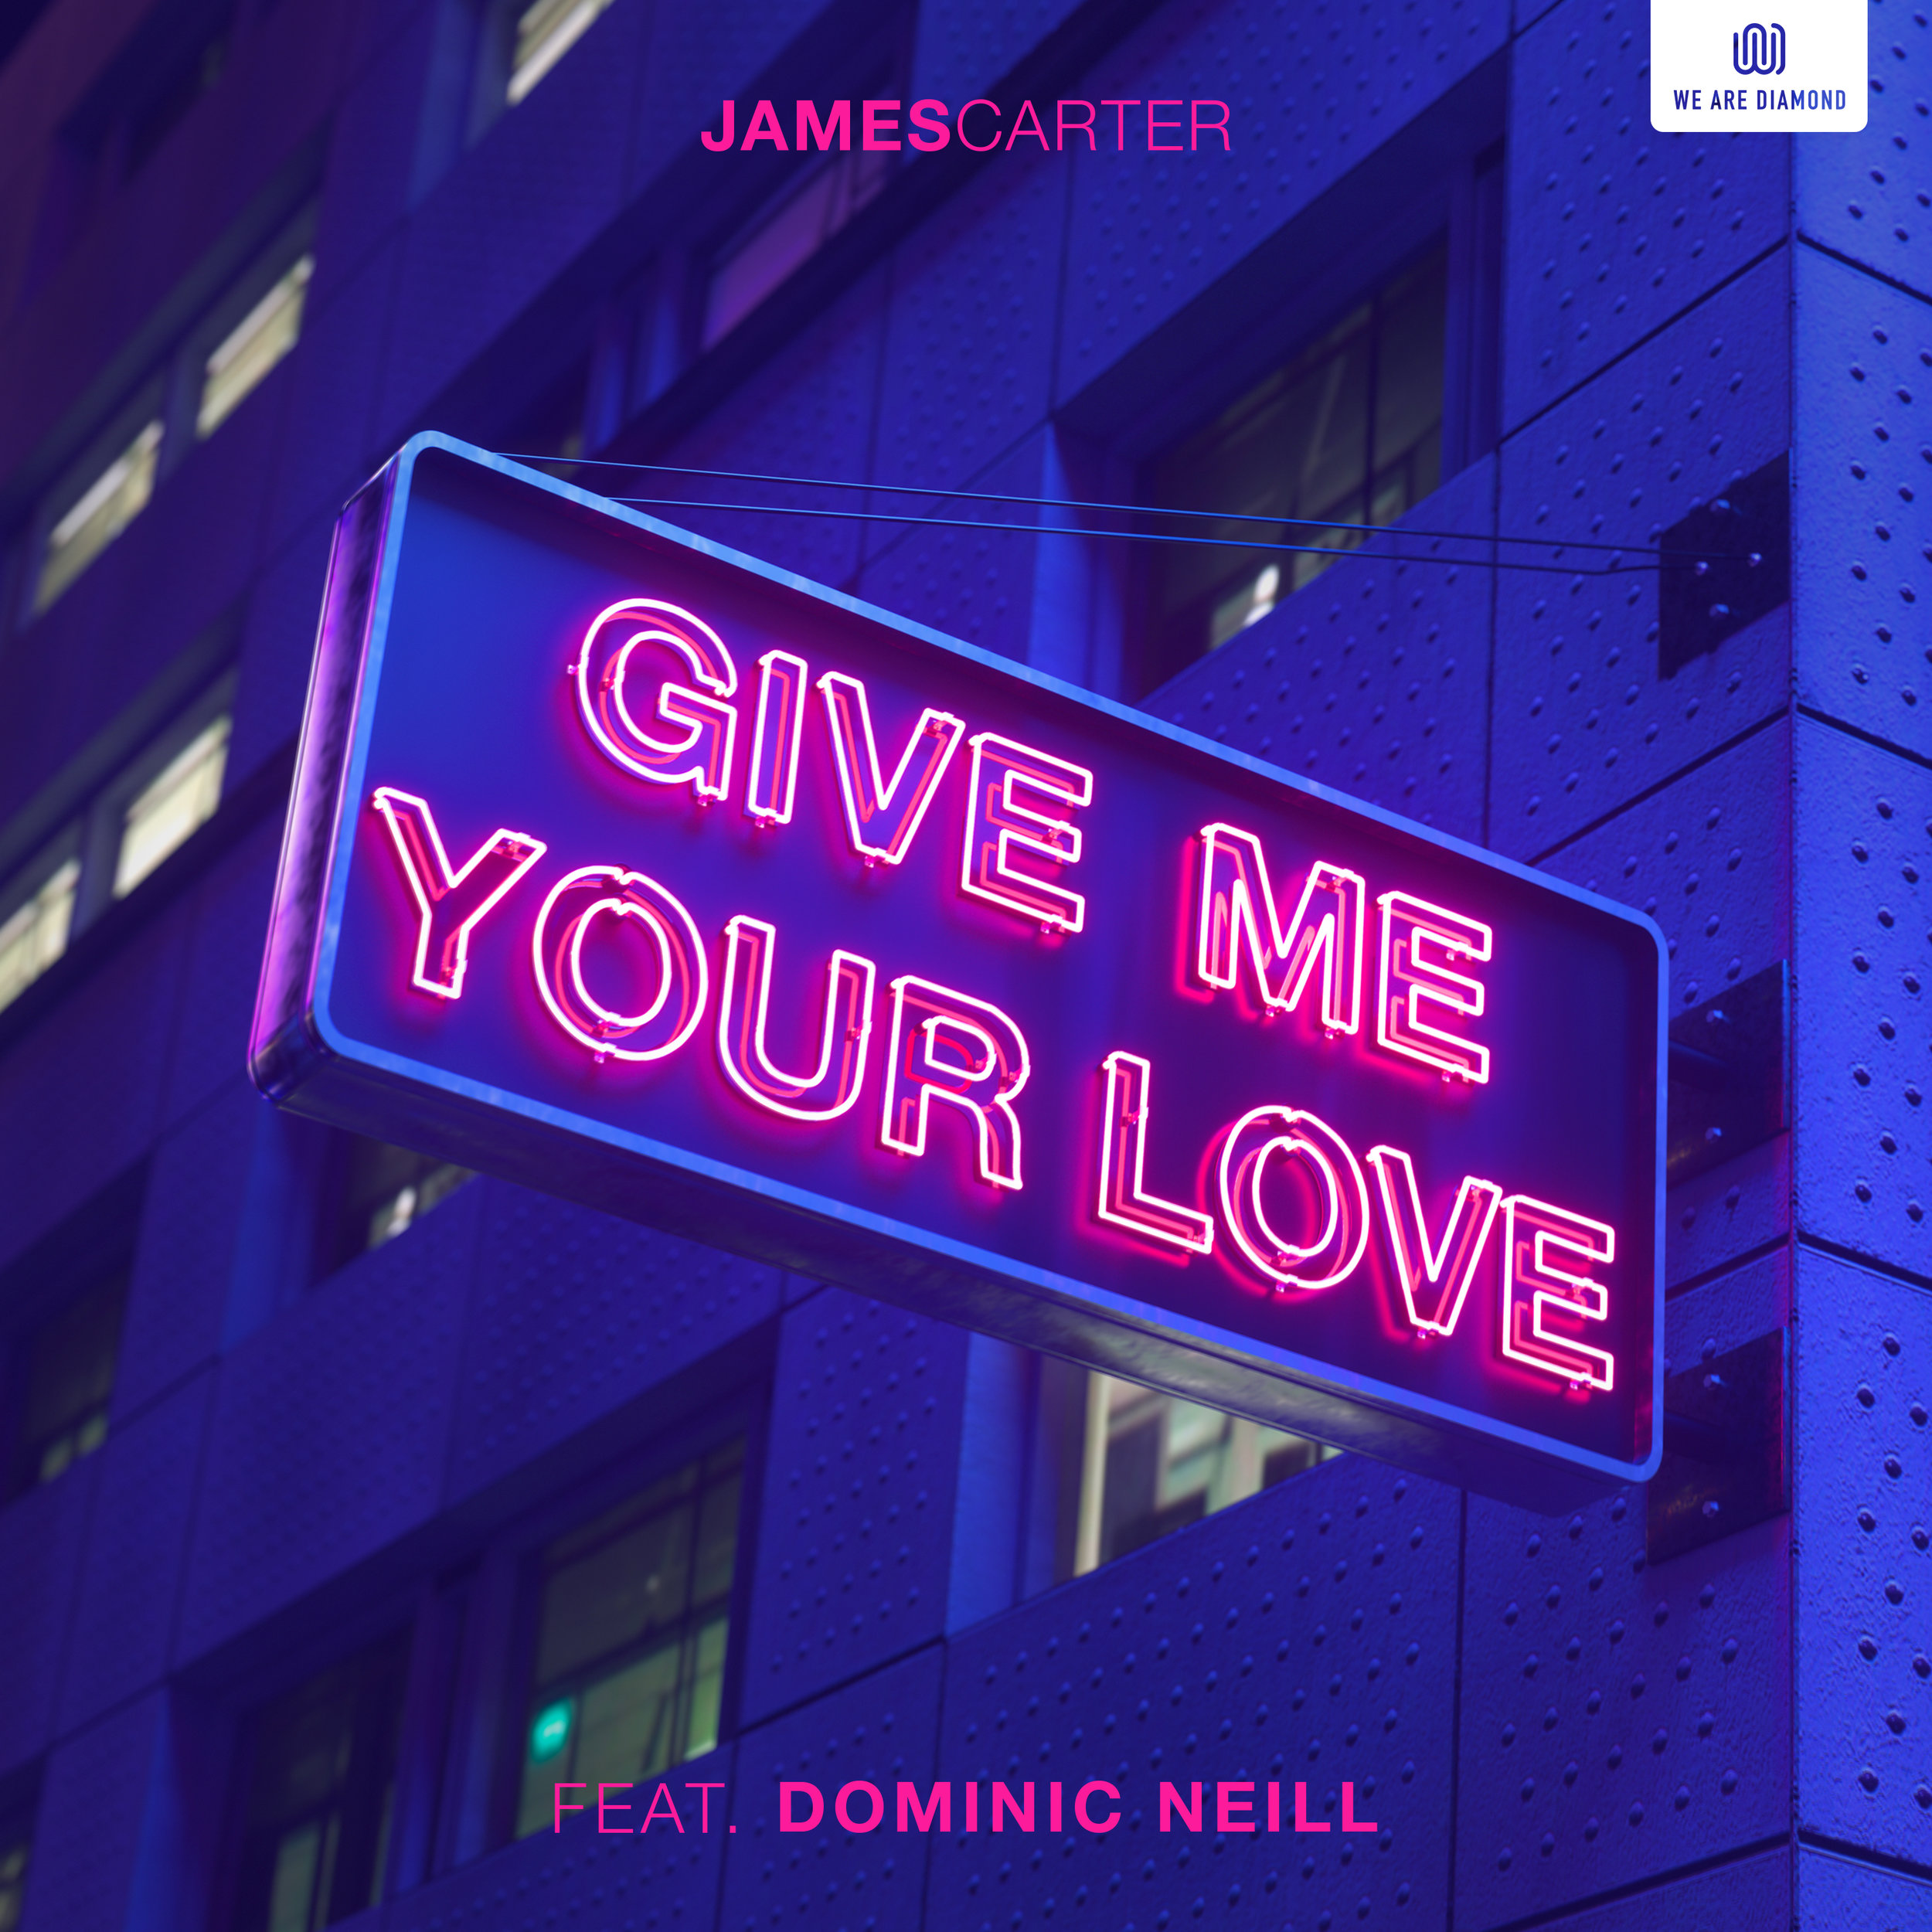 James Carter - Give Me Your Love (feat. Dominic Neill)